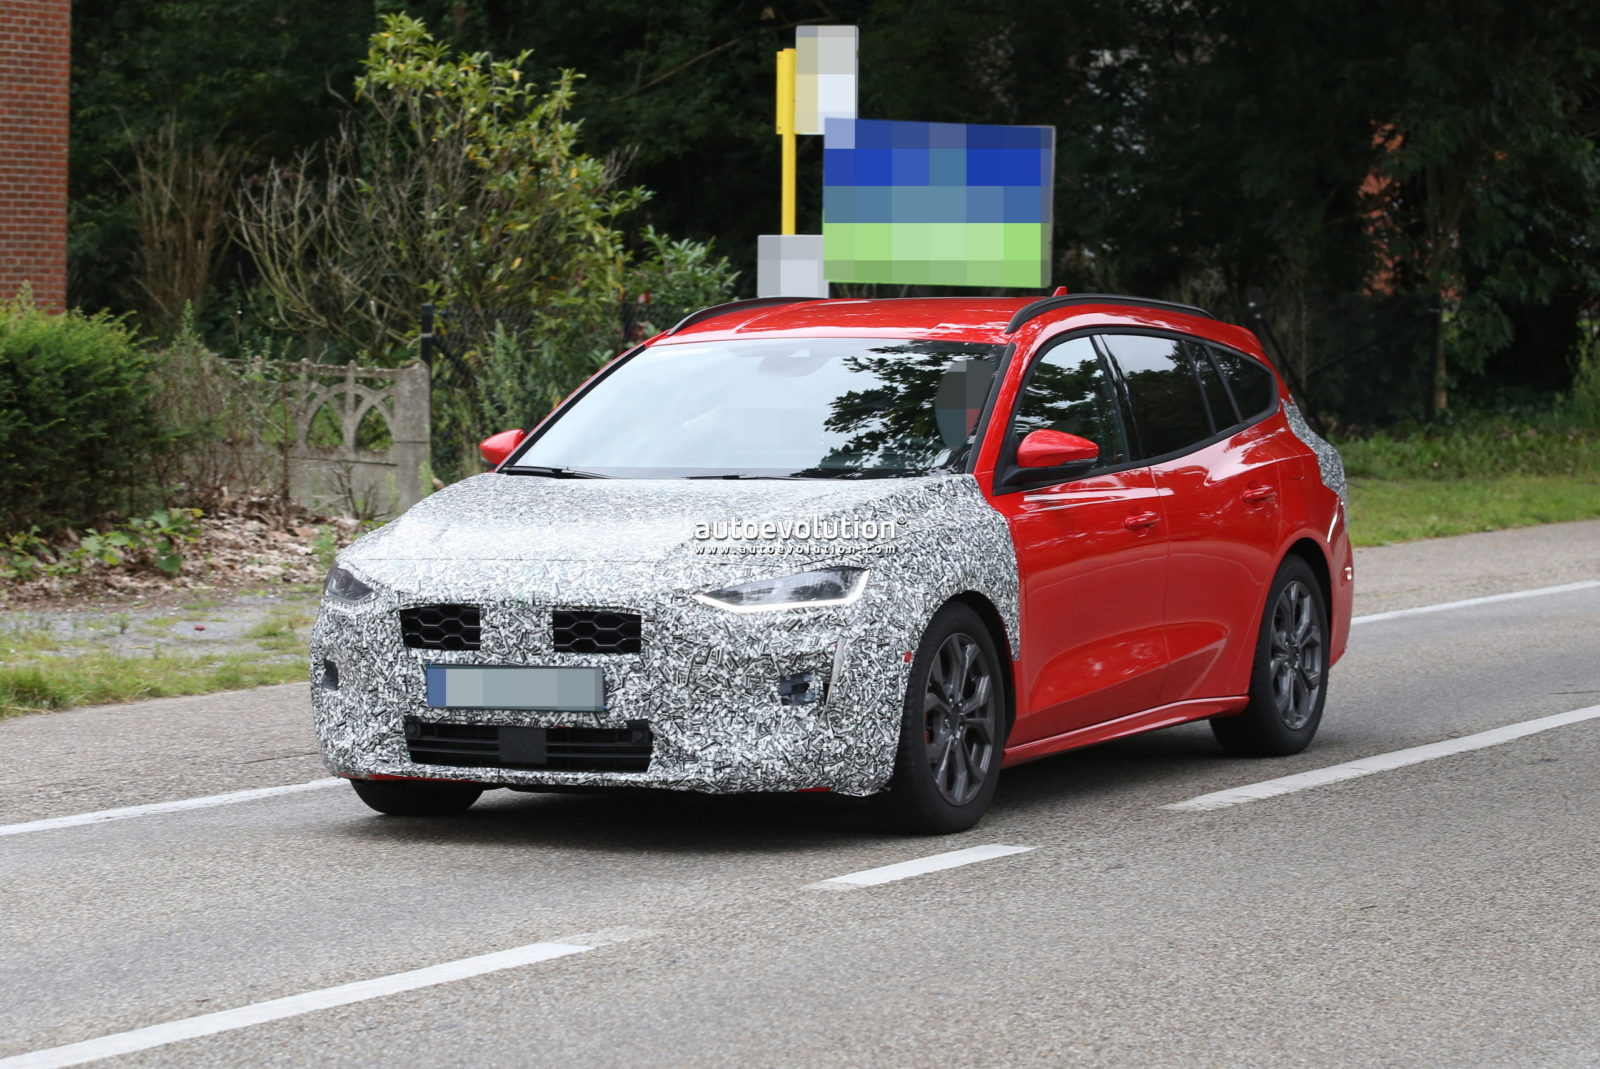 2022-ford-focus-st-estate-spied-with-minimal-changes,-looks-almost-ready-for-debut